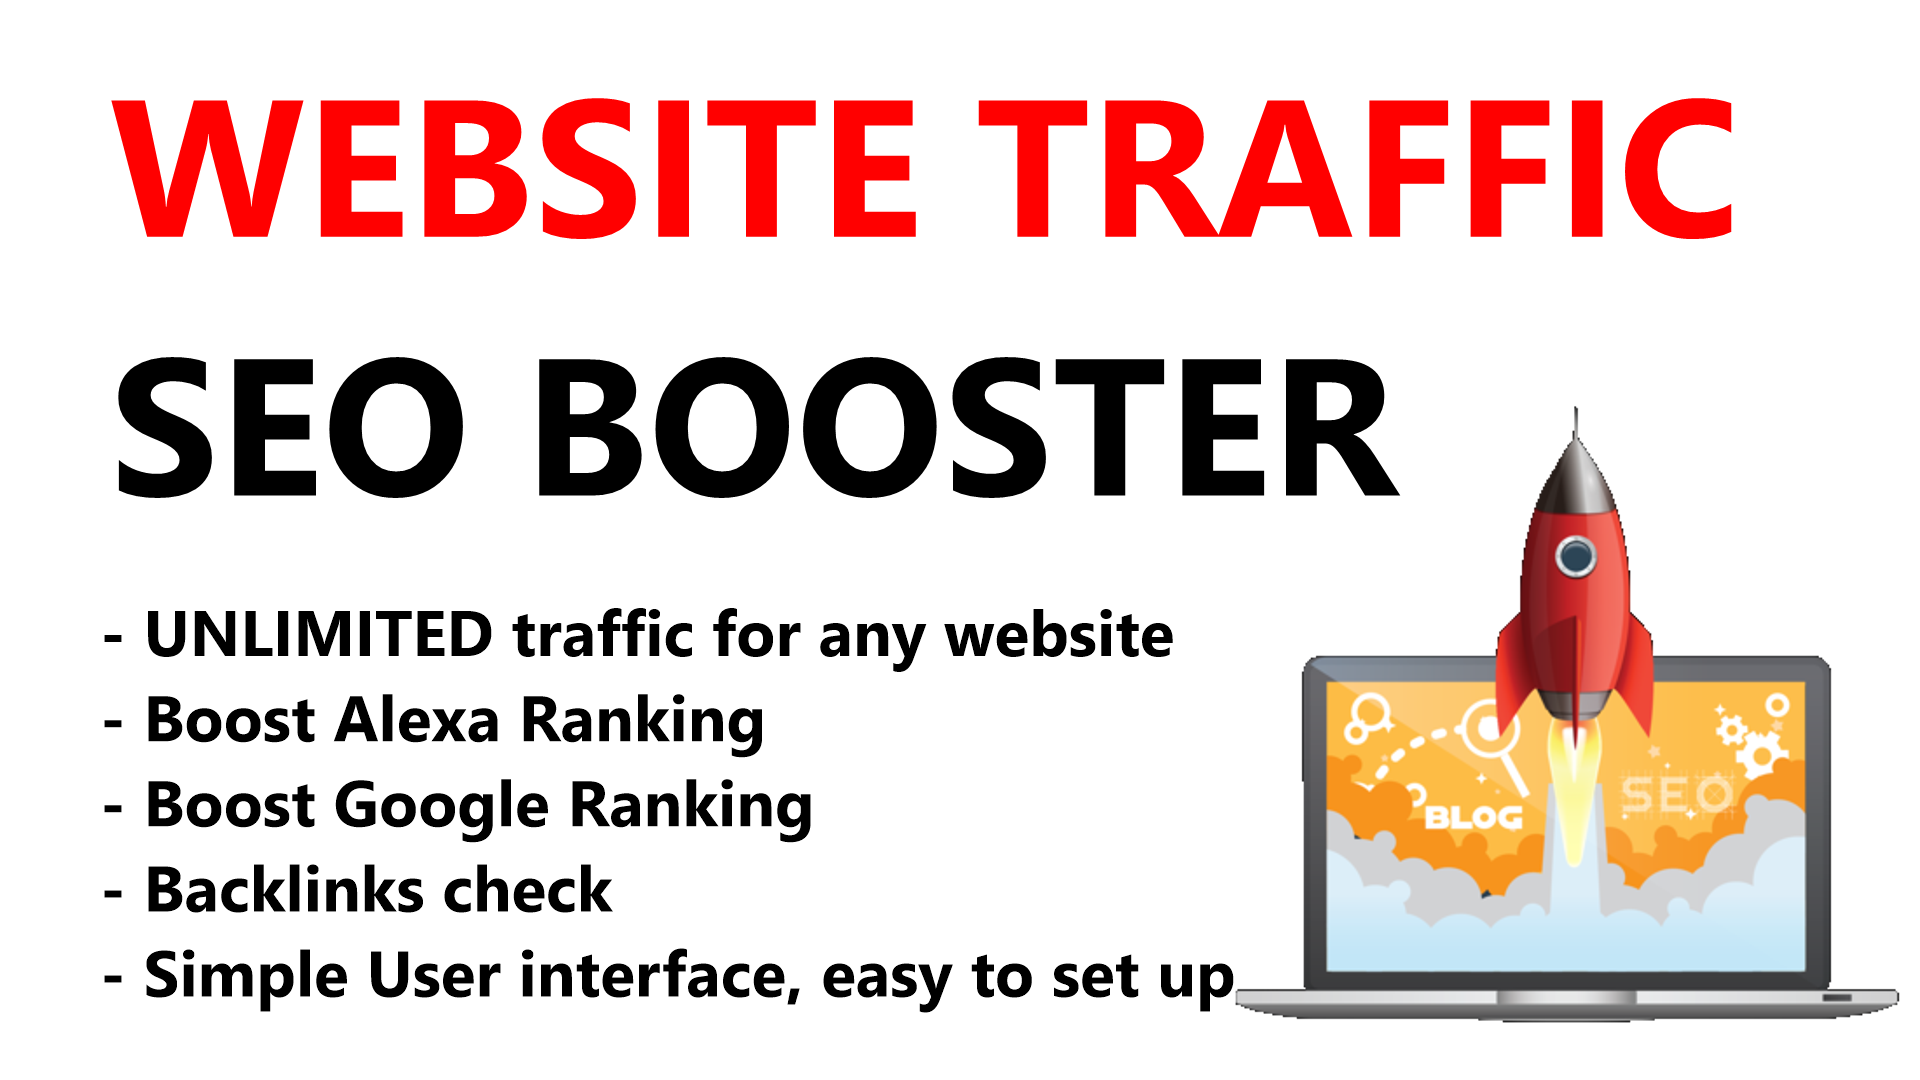 Website Traffic Booster software,  No proxies needed Generate Unlimited Traffic for any url